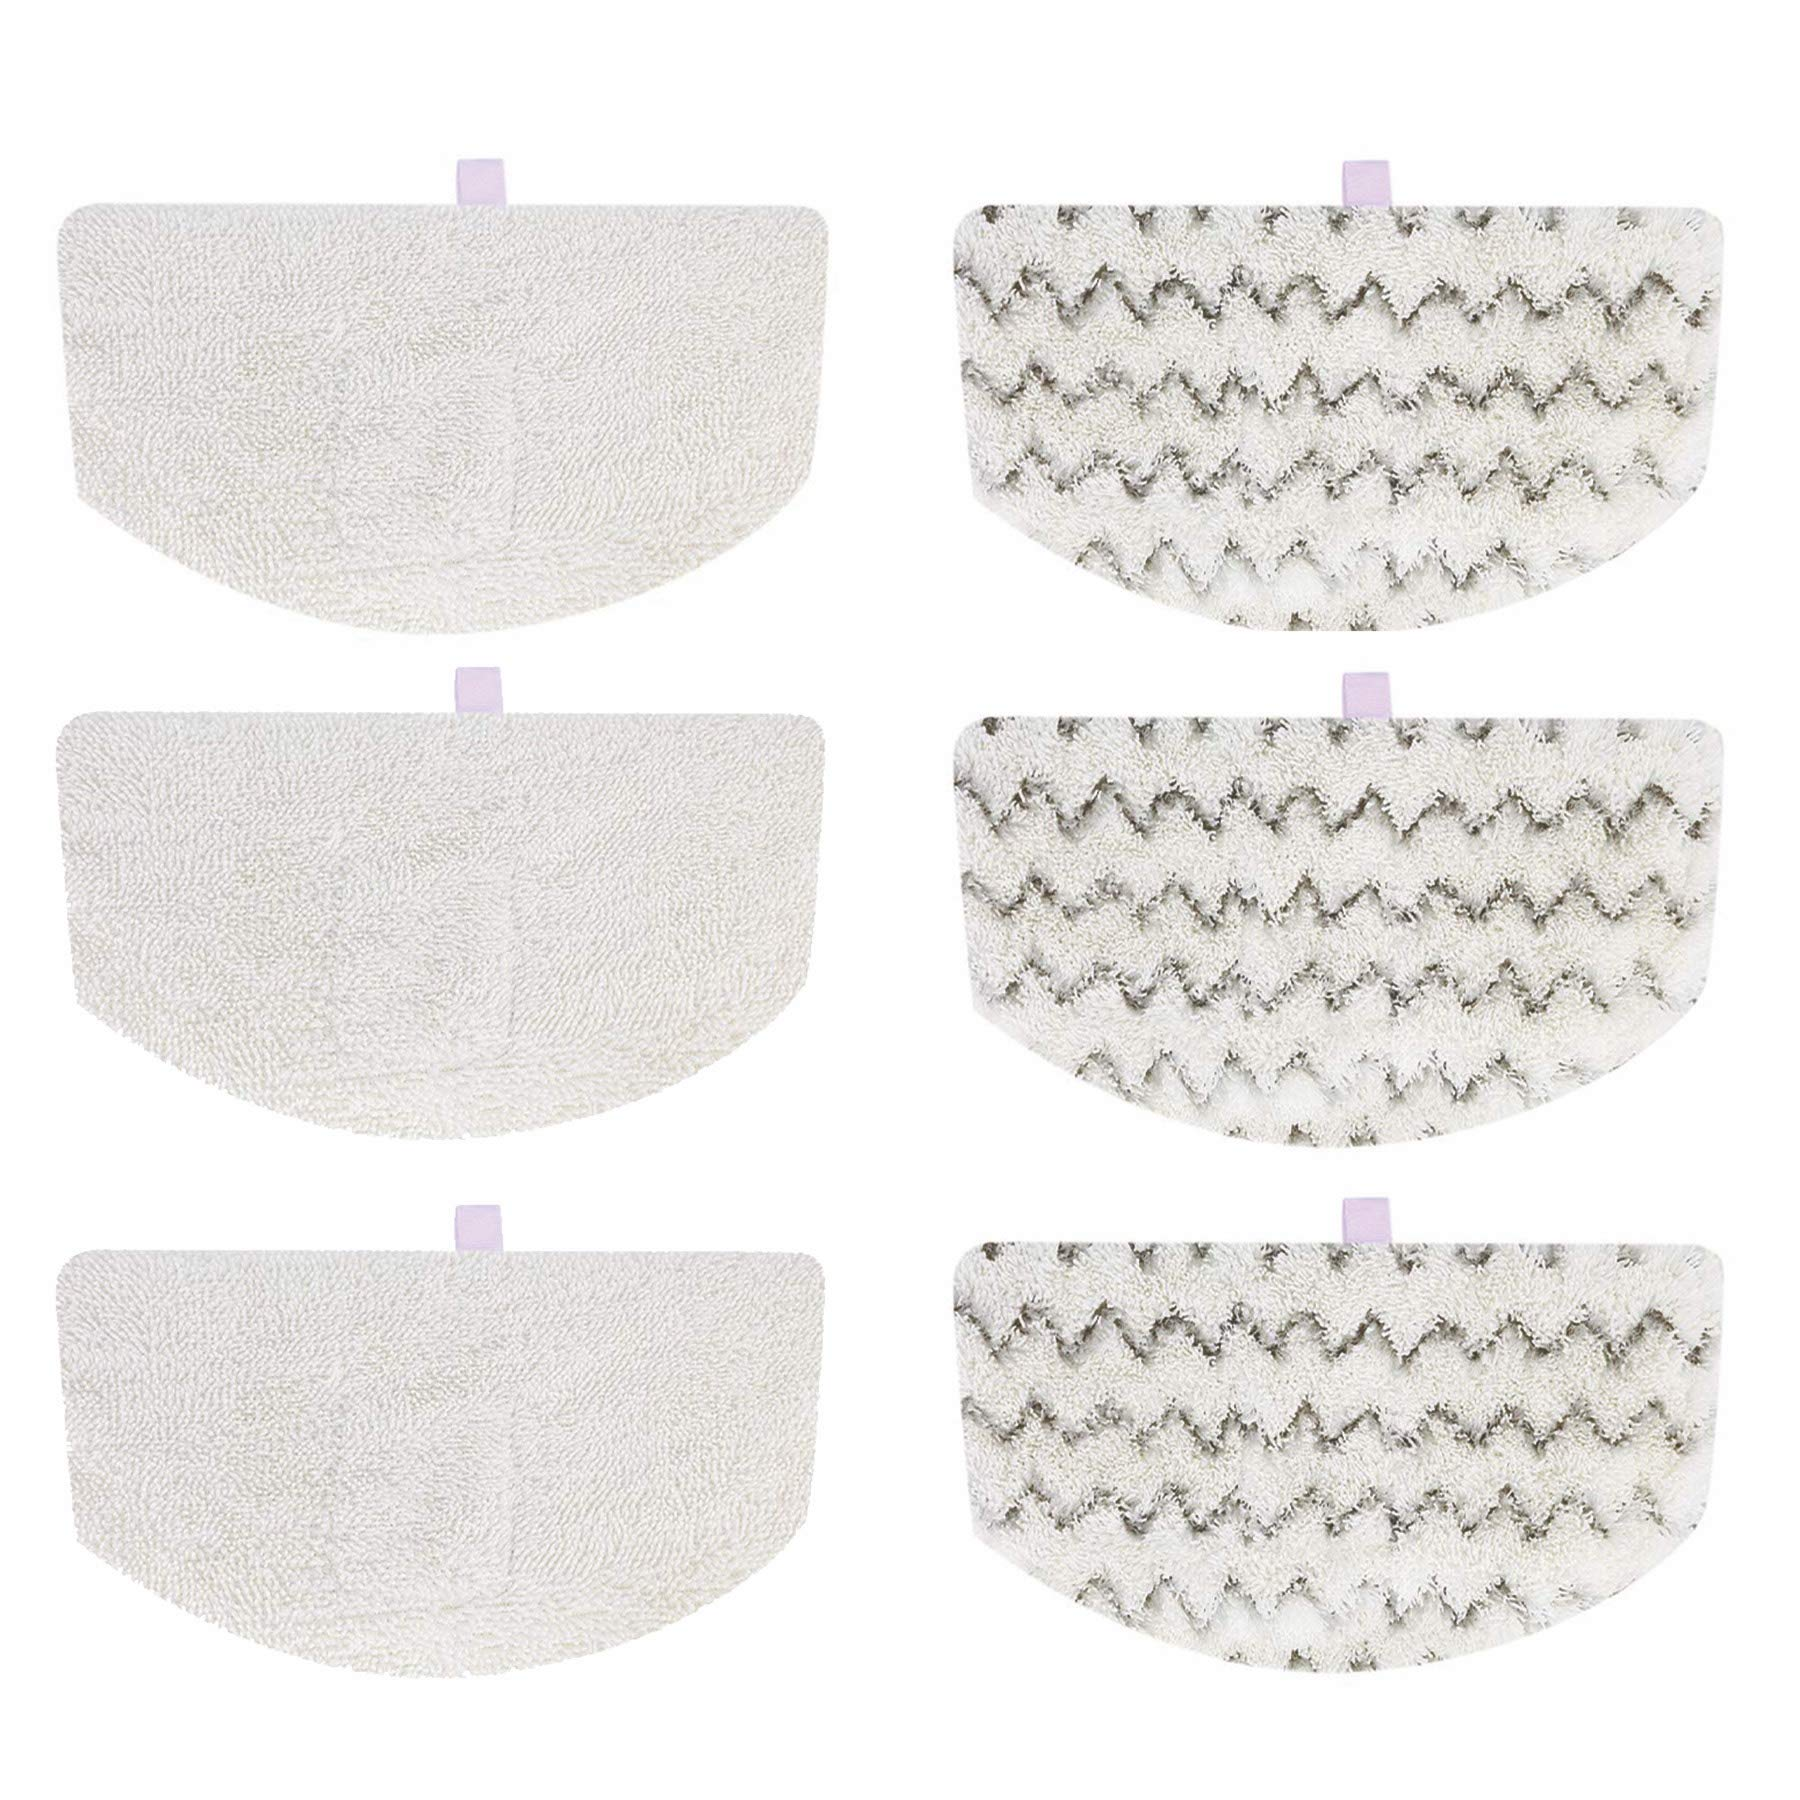 Paros Products 6 - Pack Washable/Reusable Steam Mop Pad Replacements (Quality Certified) for Bissell PowerFresh 1940 1440 1544 Series; Model 19402, 19404, 19408, 1940A, 1940Q, 1940T, 1940W